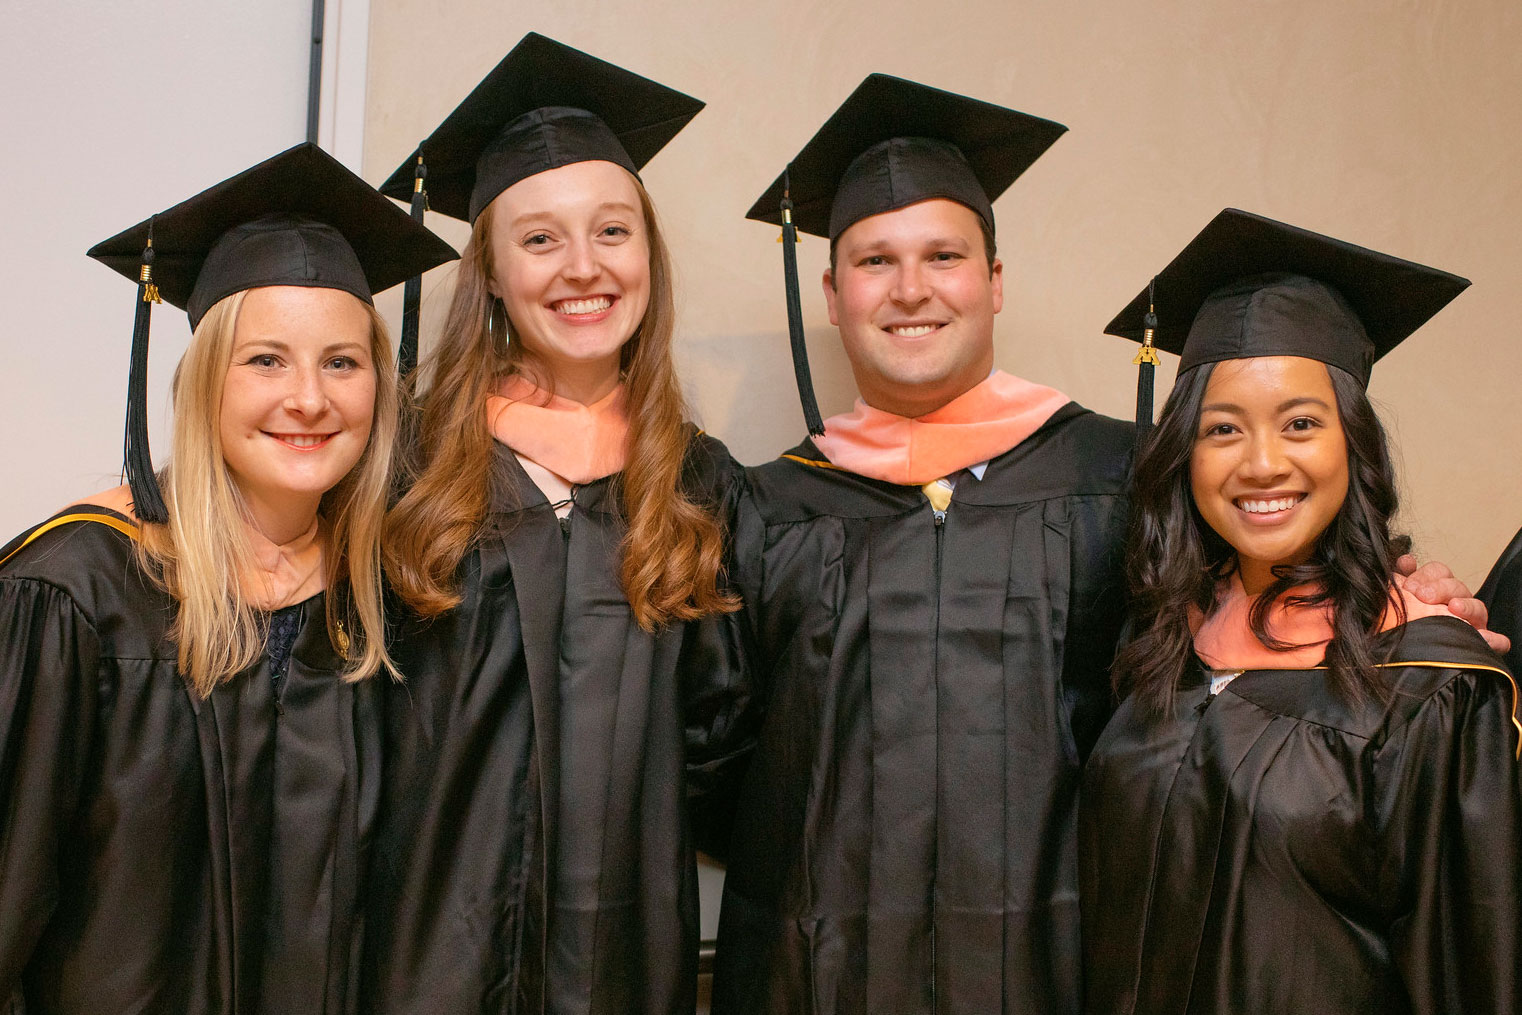 students smiling at the 2019 commencement ceremony